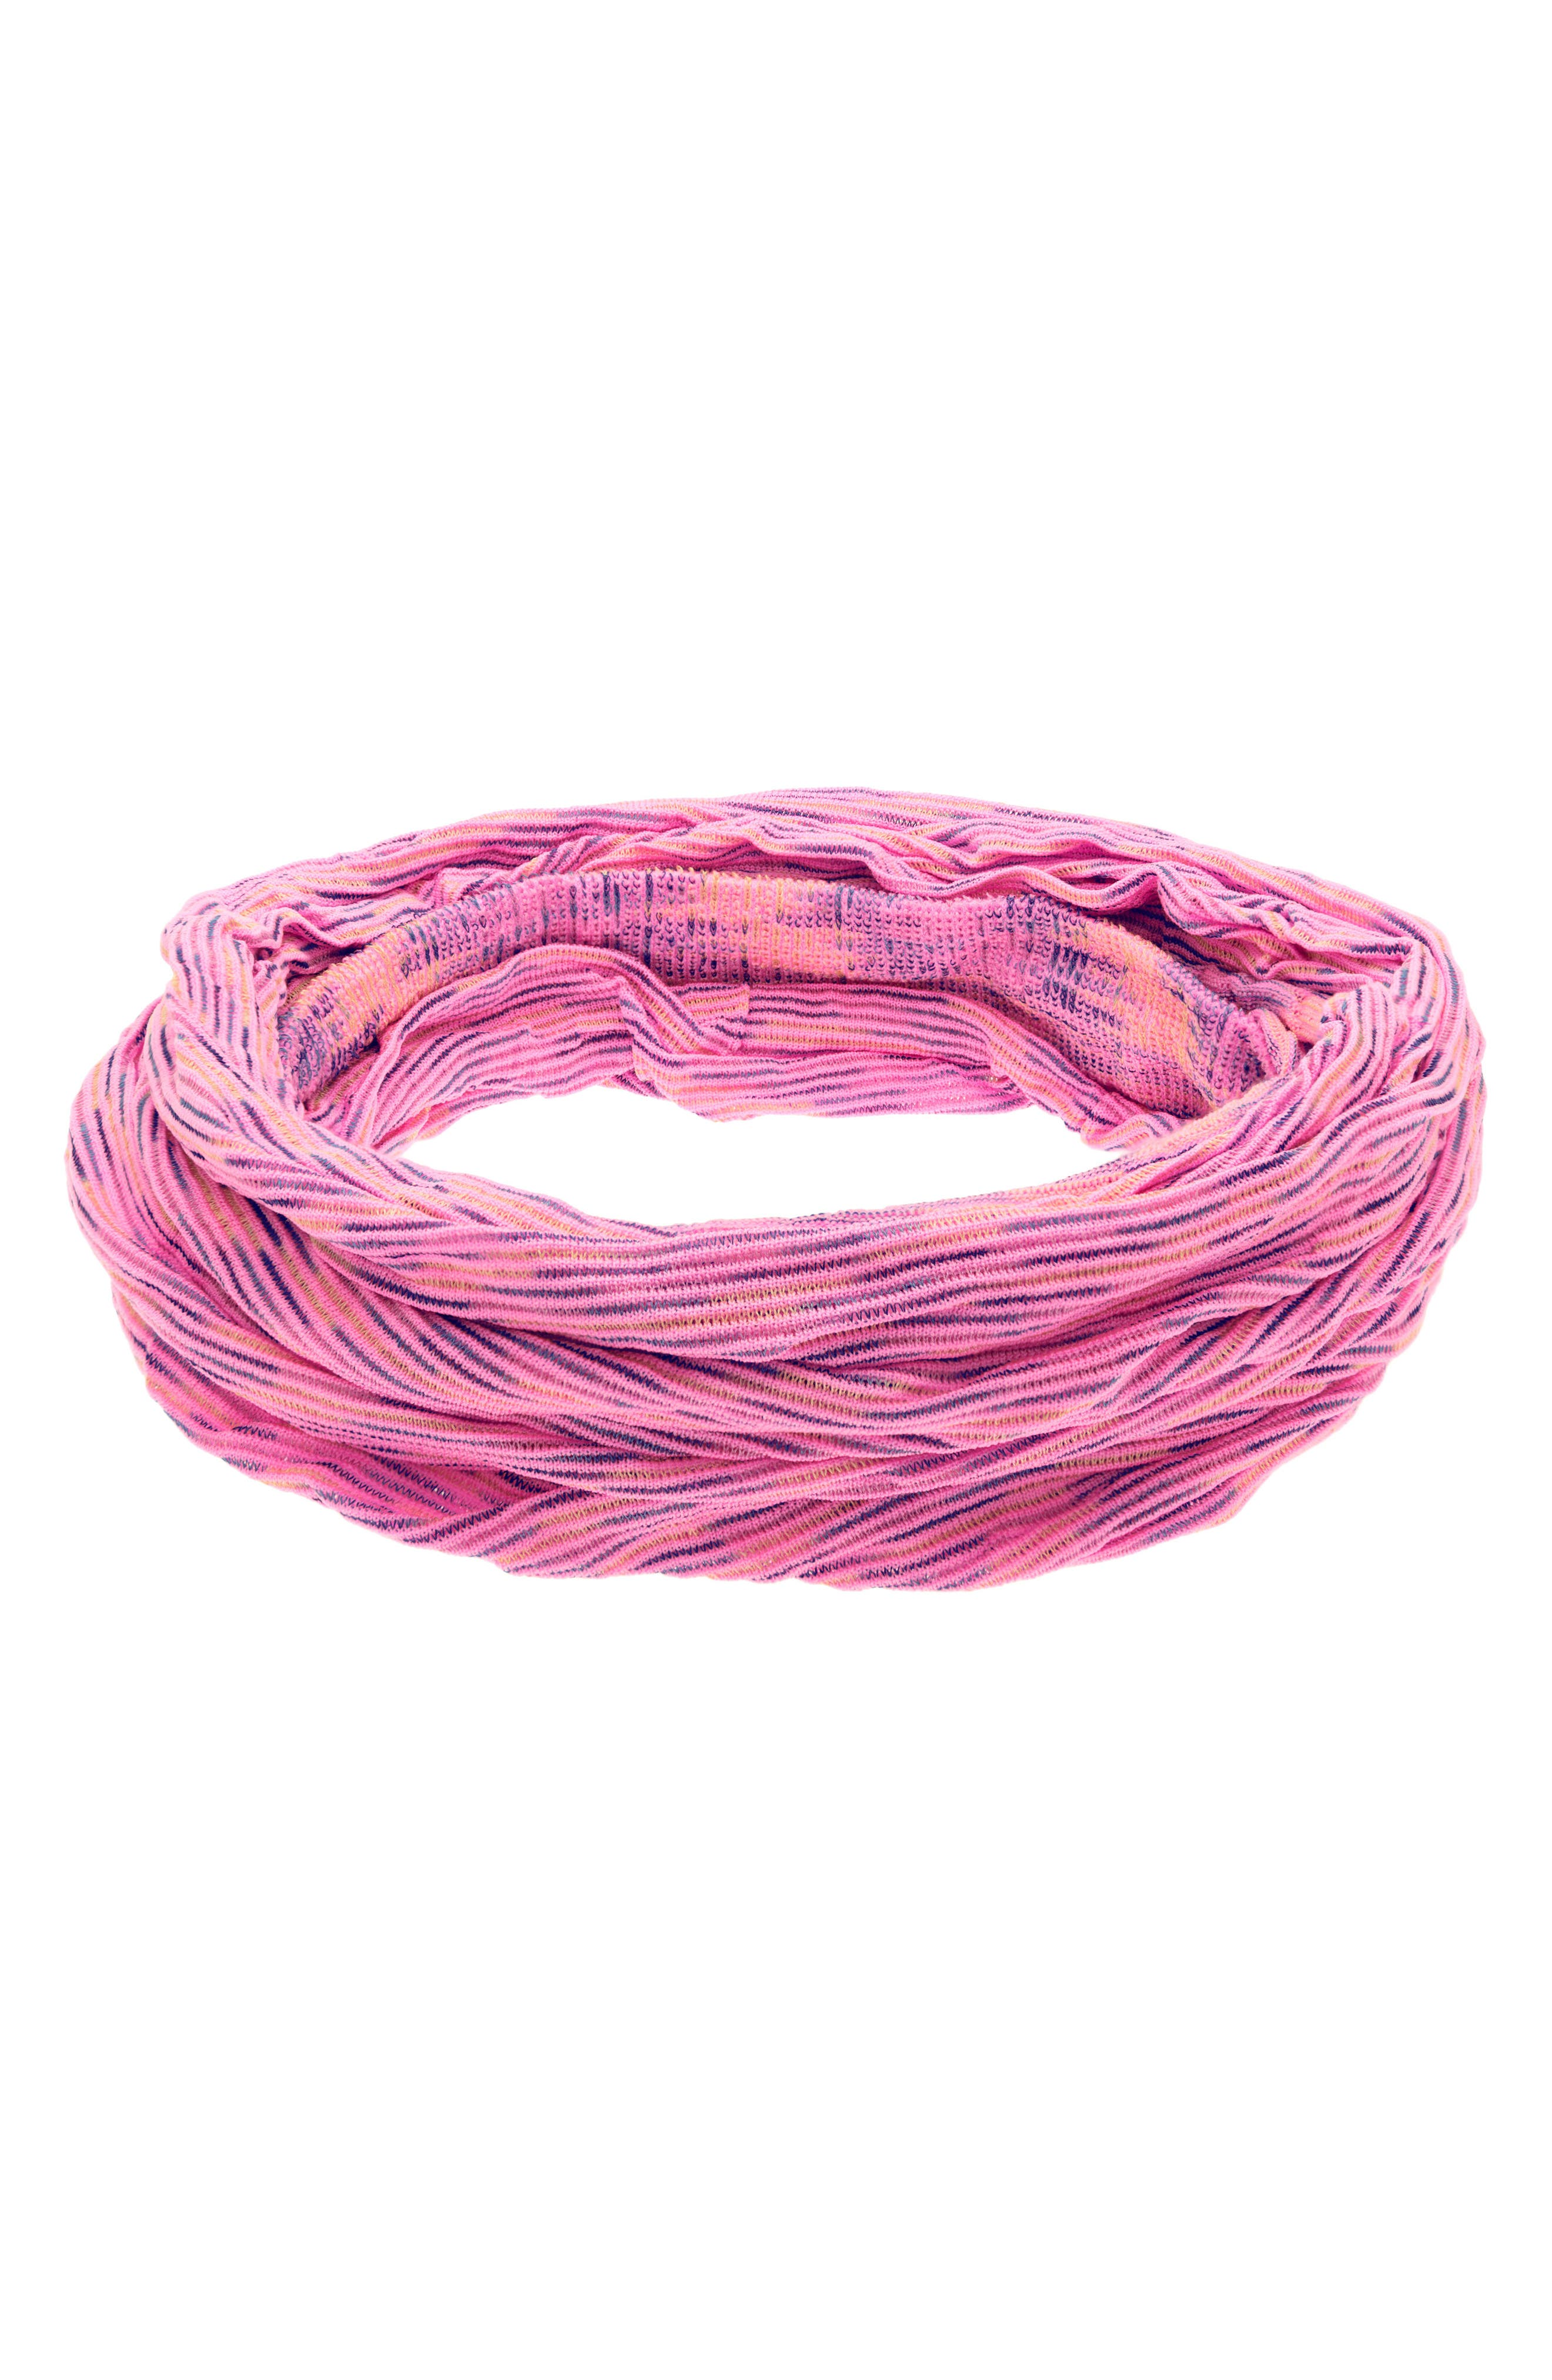 Space Dye Relaxed Turban Head Wrap,                             Alternate thumbnail 2, color,                             PINK